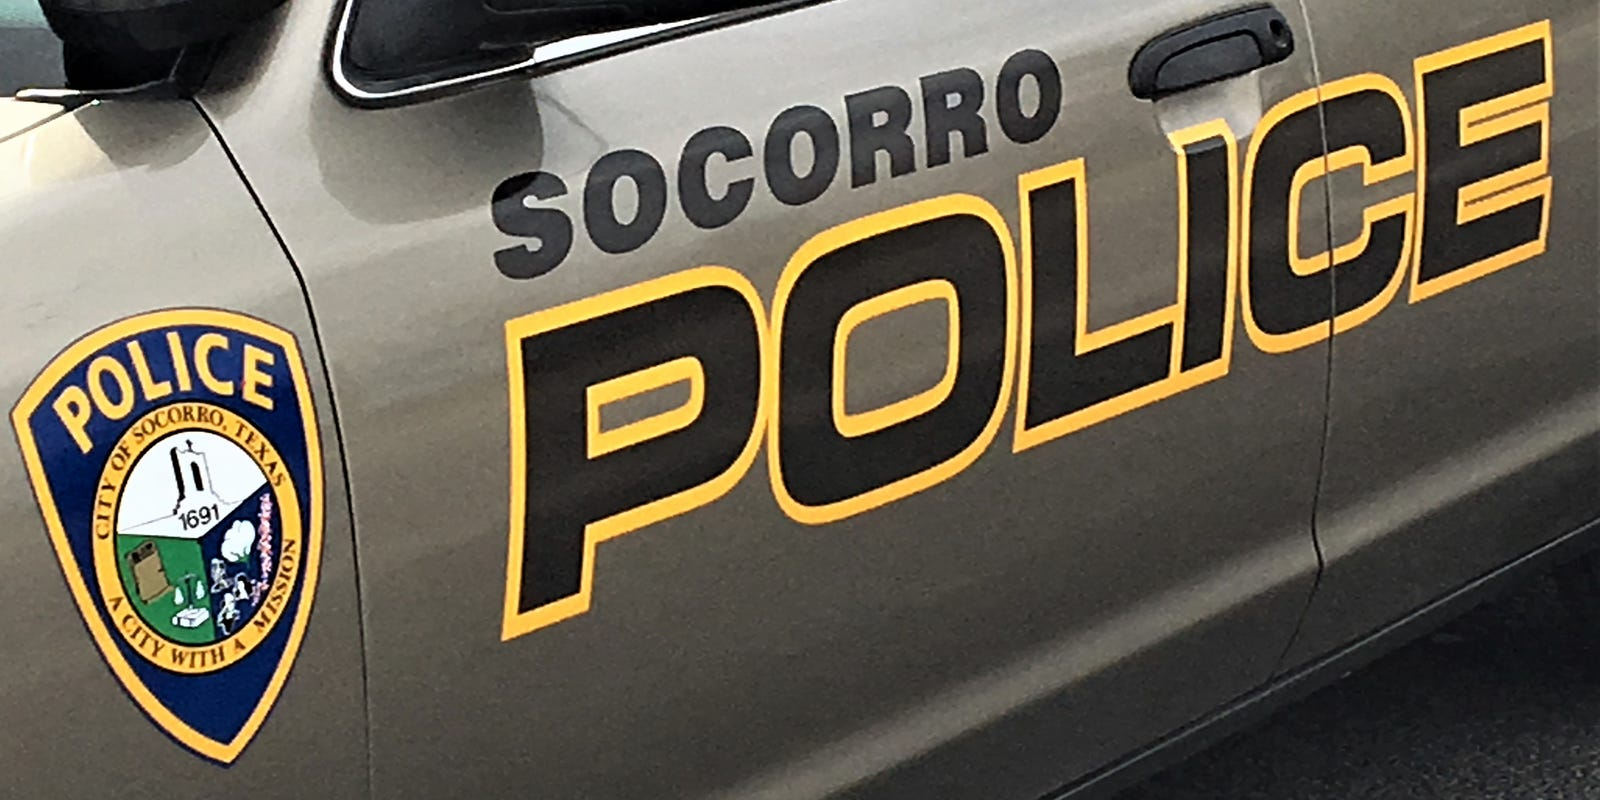 2 wounded in shooting in Socorro, Texas; 3 people of interest detained